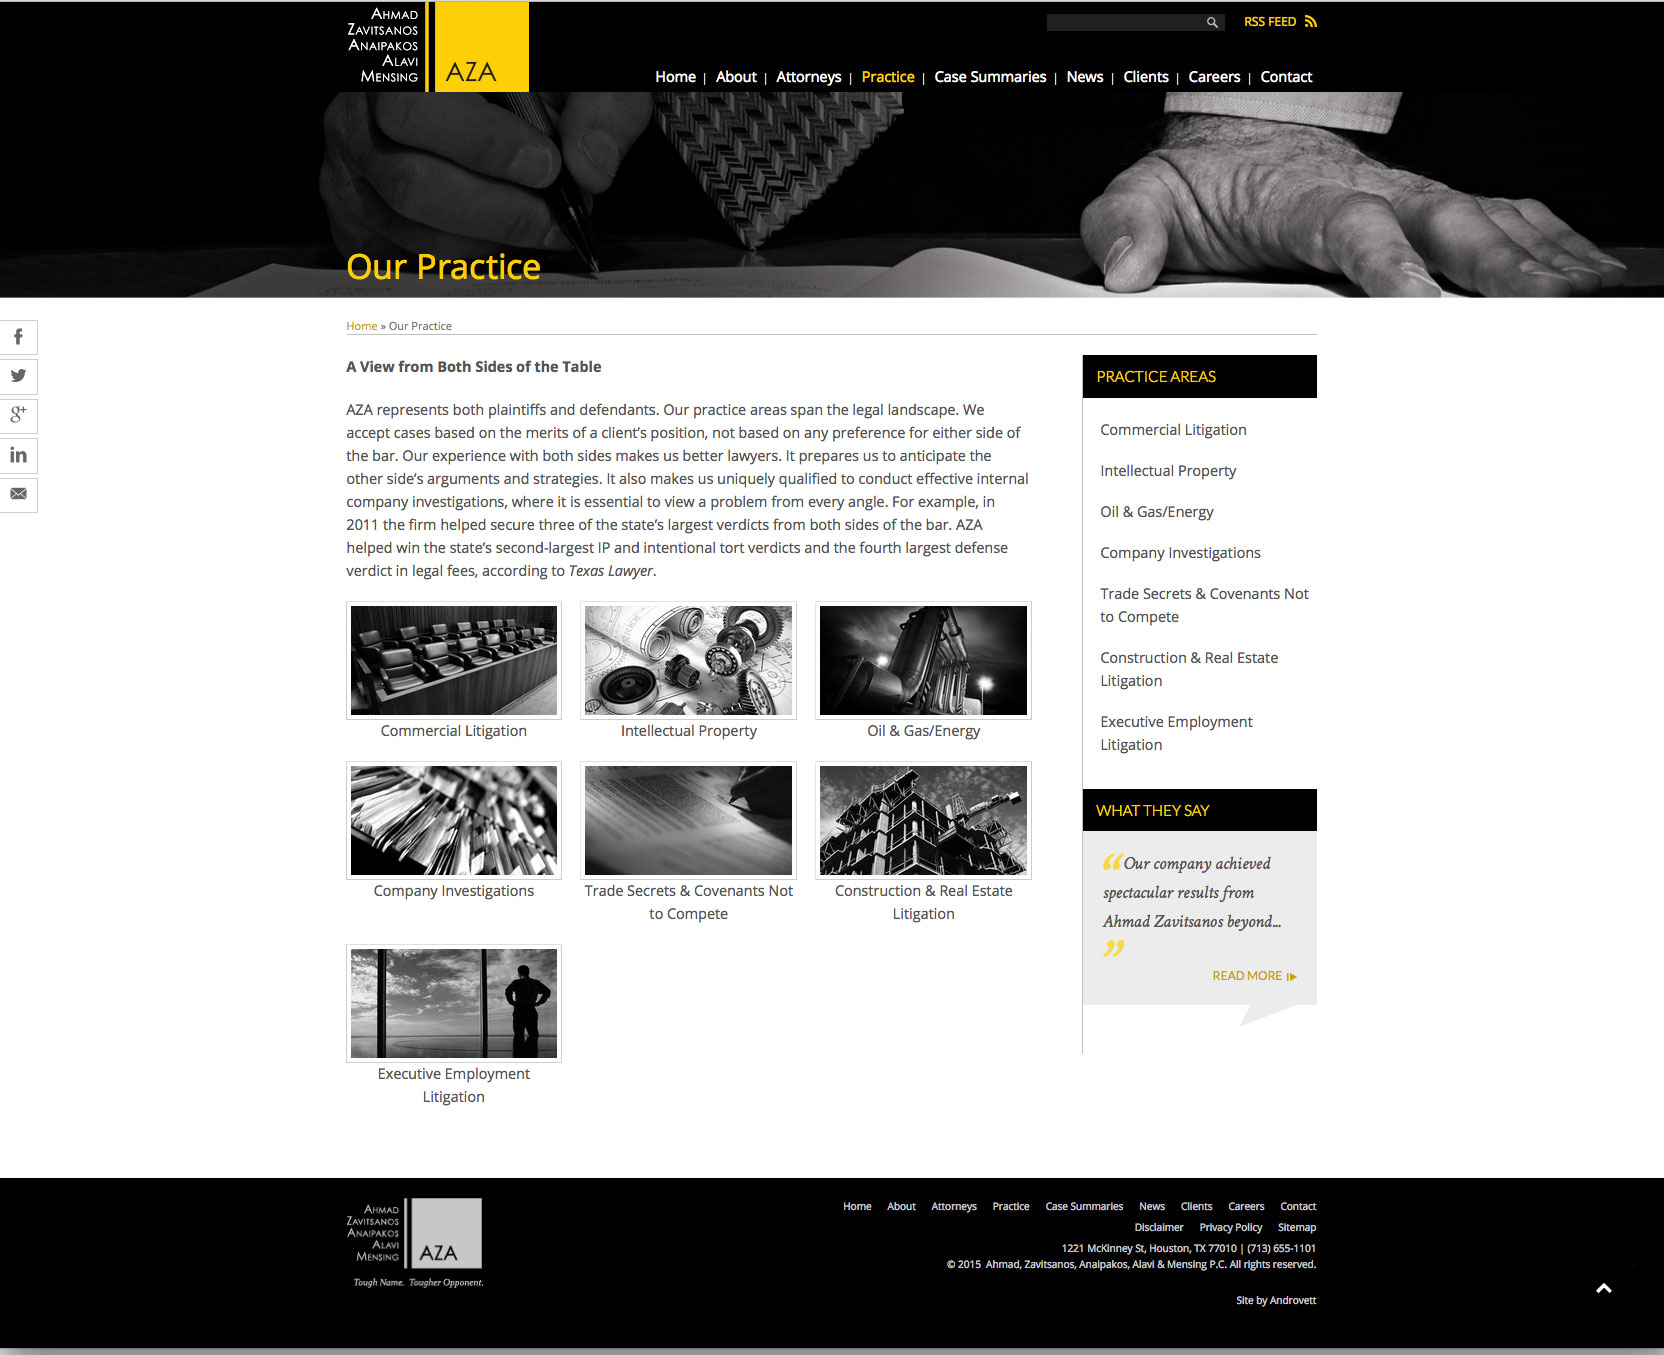 Practice Areas Landing Page